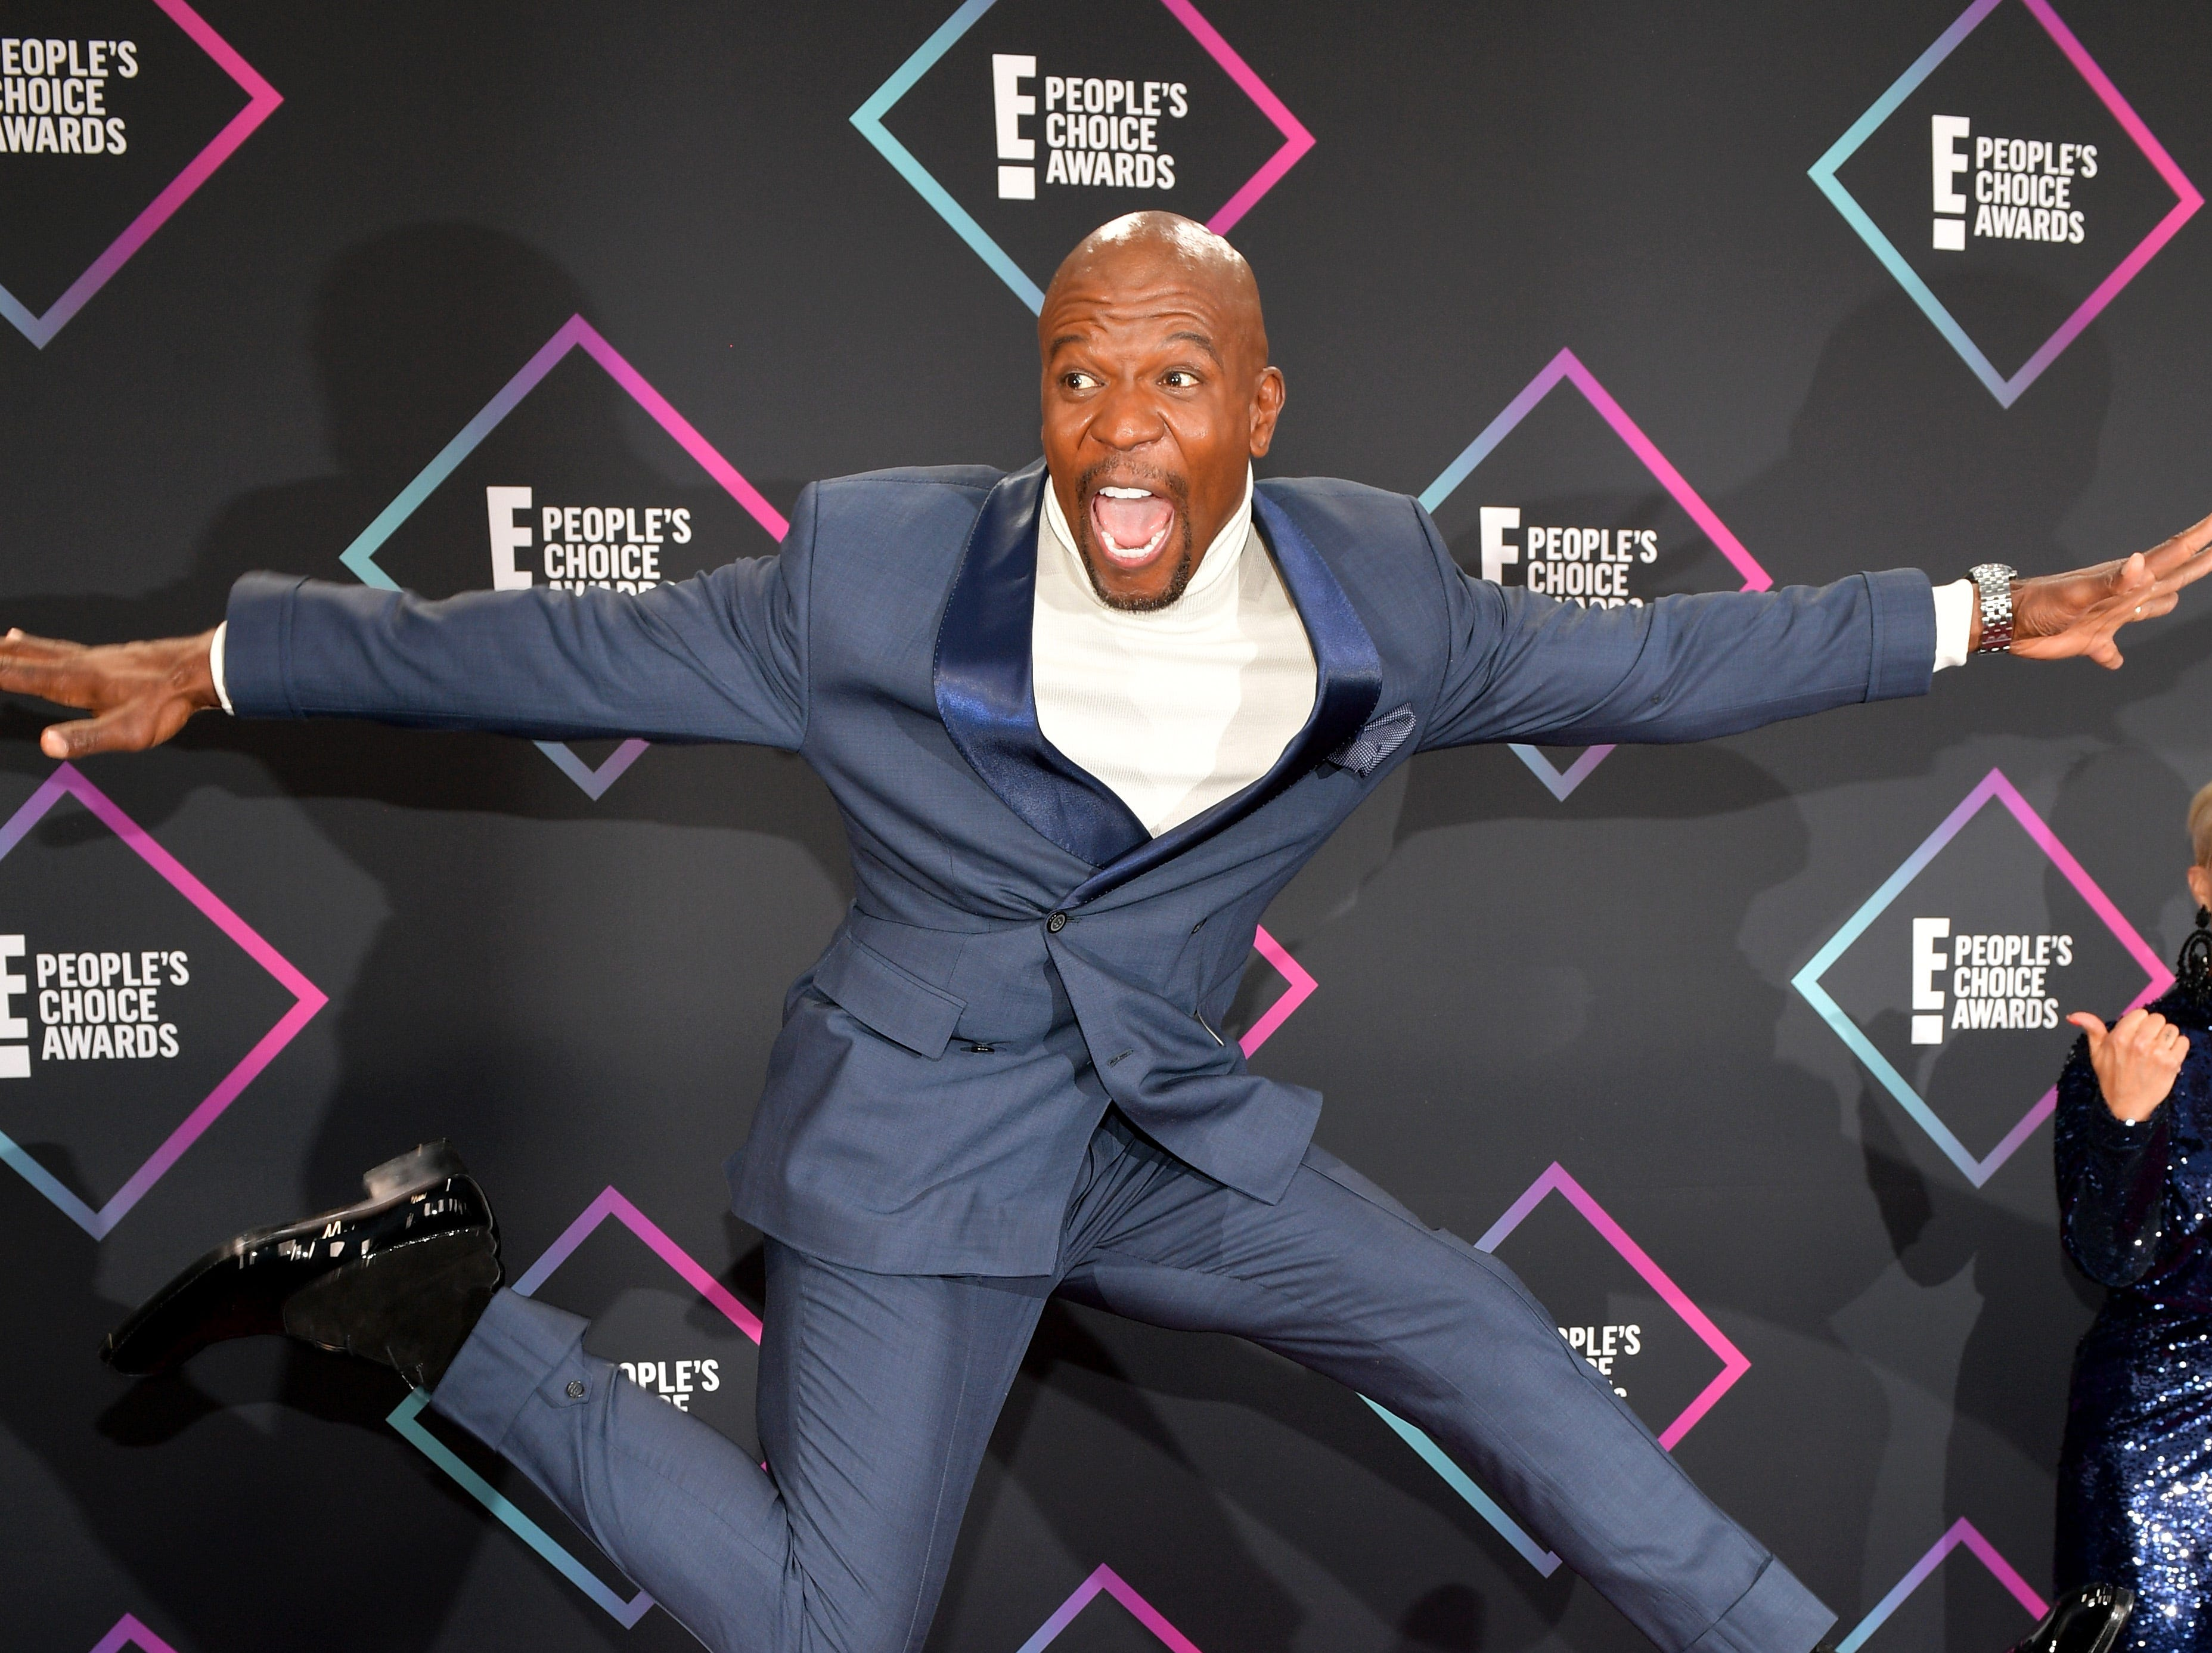 SANTA MONICA, CA - NOVEMBER 11:  Terry Crews attends the People's Choice Awards 2018 at Barker Hangar on November 11, 2018 in Santa Monica, California.  (Photo by Matt Winkelmeyer/Getty Images) ORG XMIT: 775237965 ORIG FILE ID: 1060371660